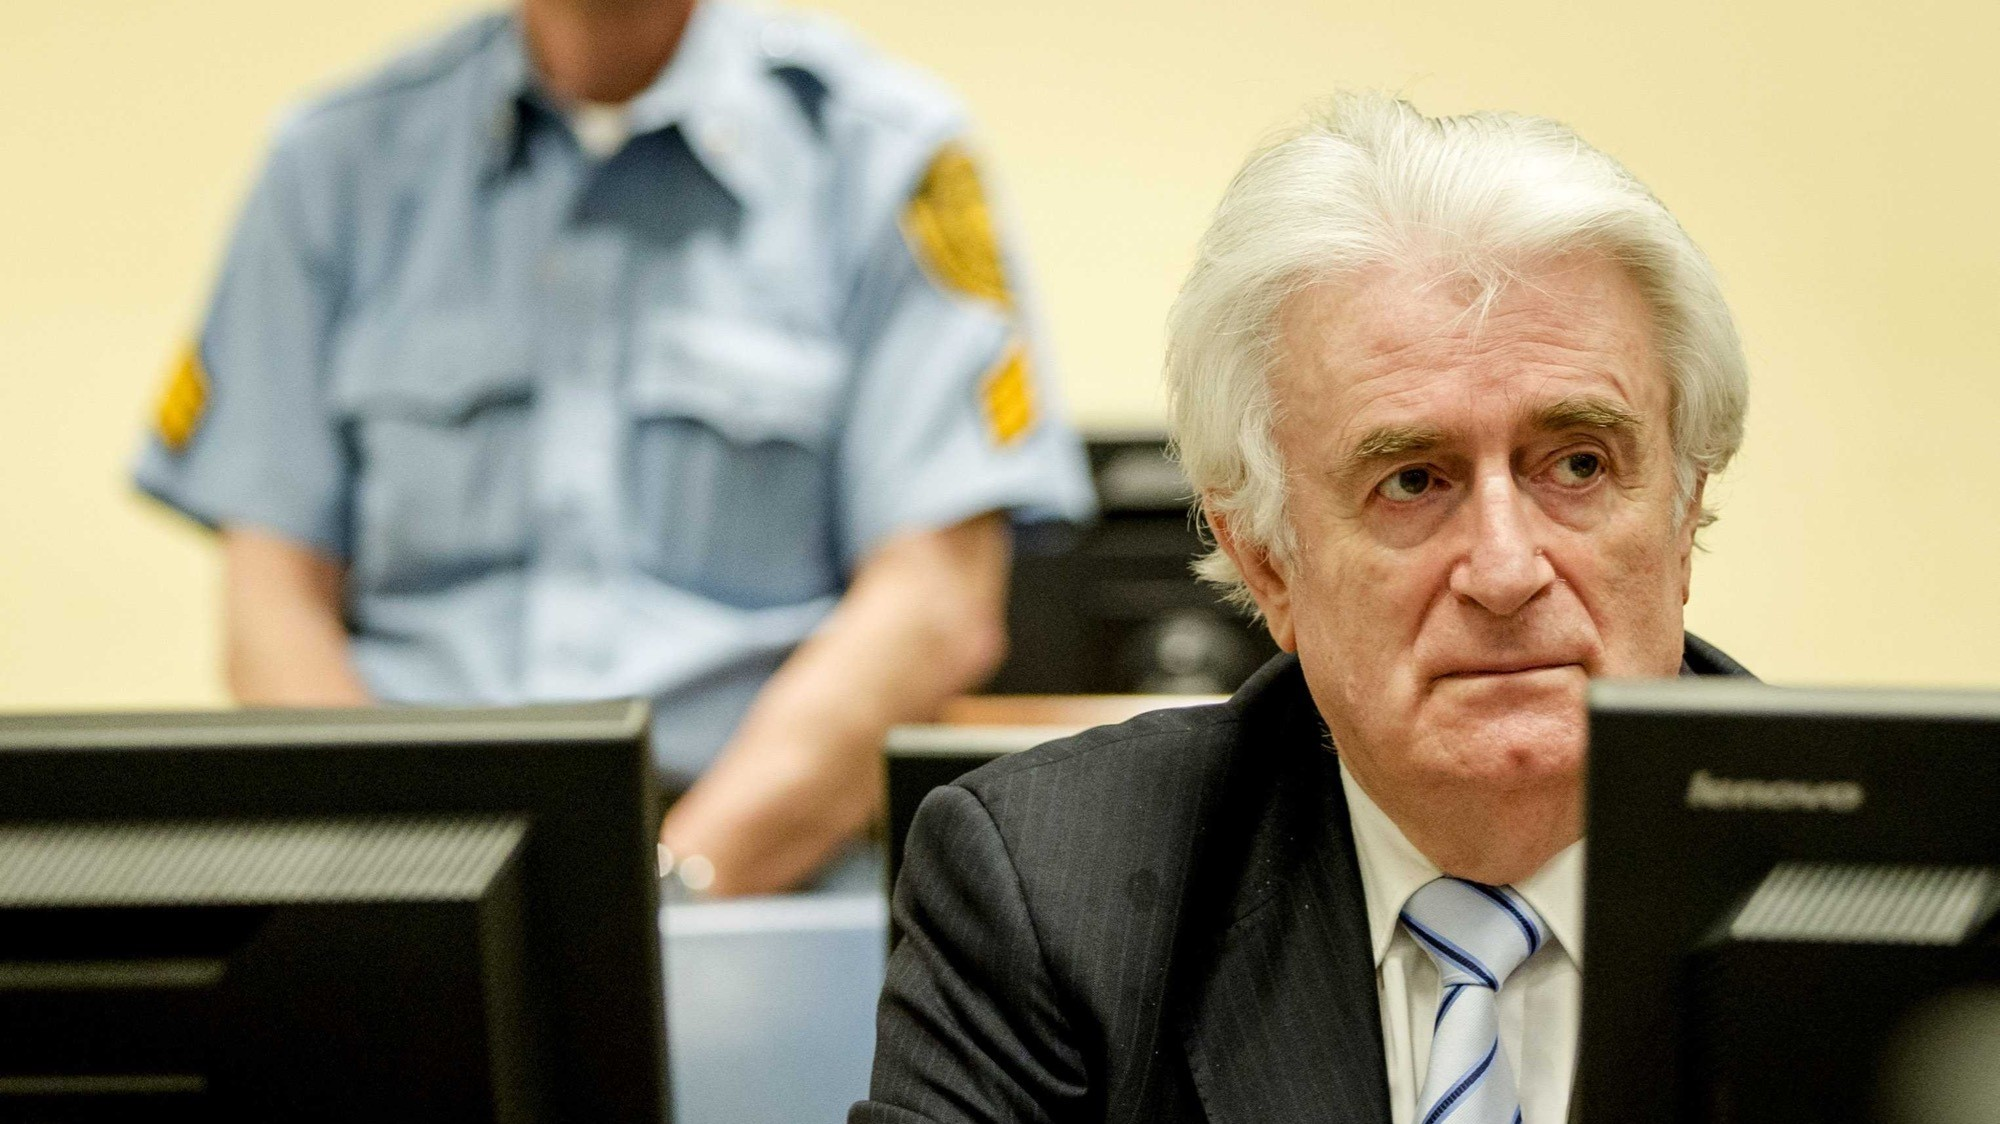 Court Finds Former Serb Leader Karadzic Guilty of Genocide, War Crimes, and Crimes against Humanity